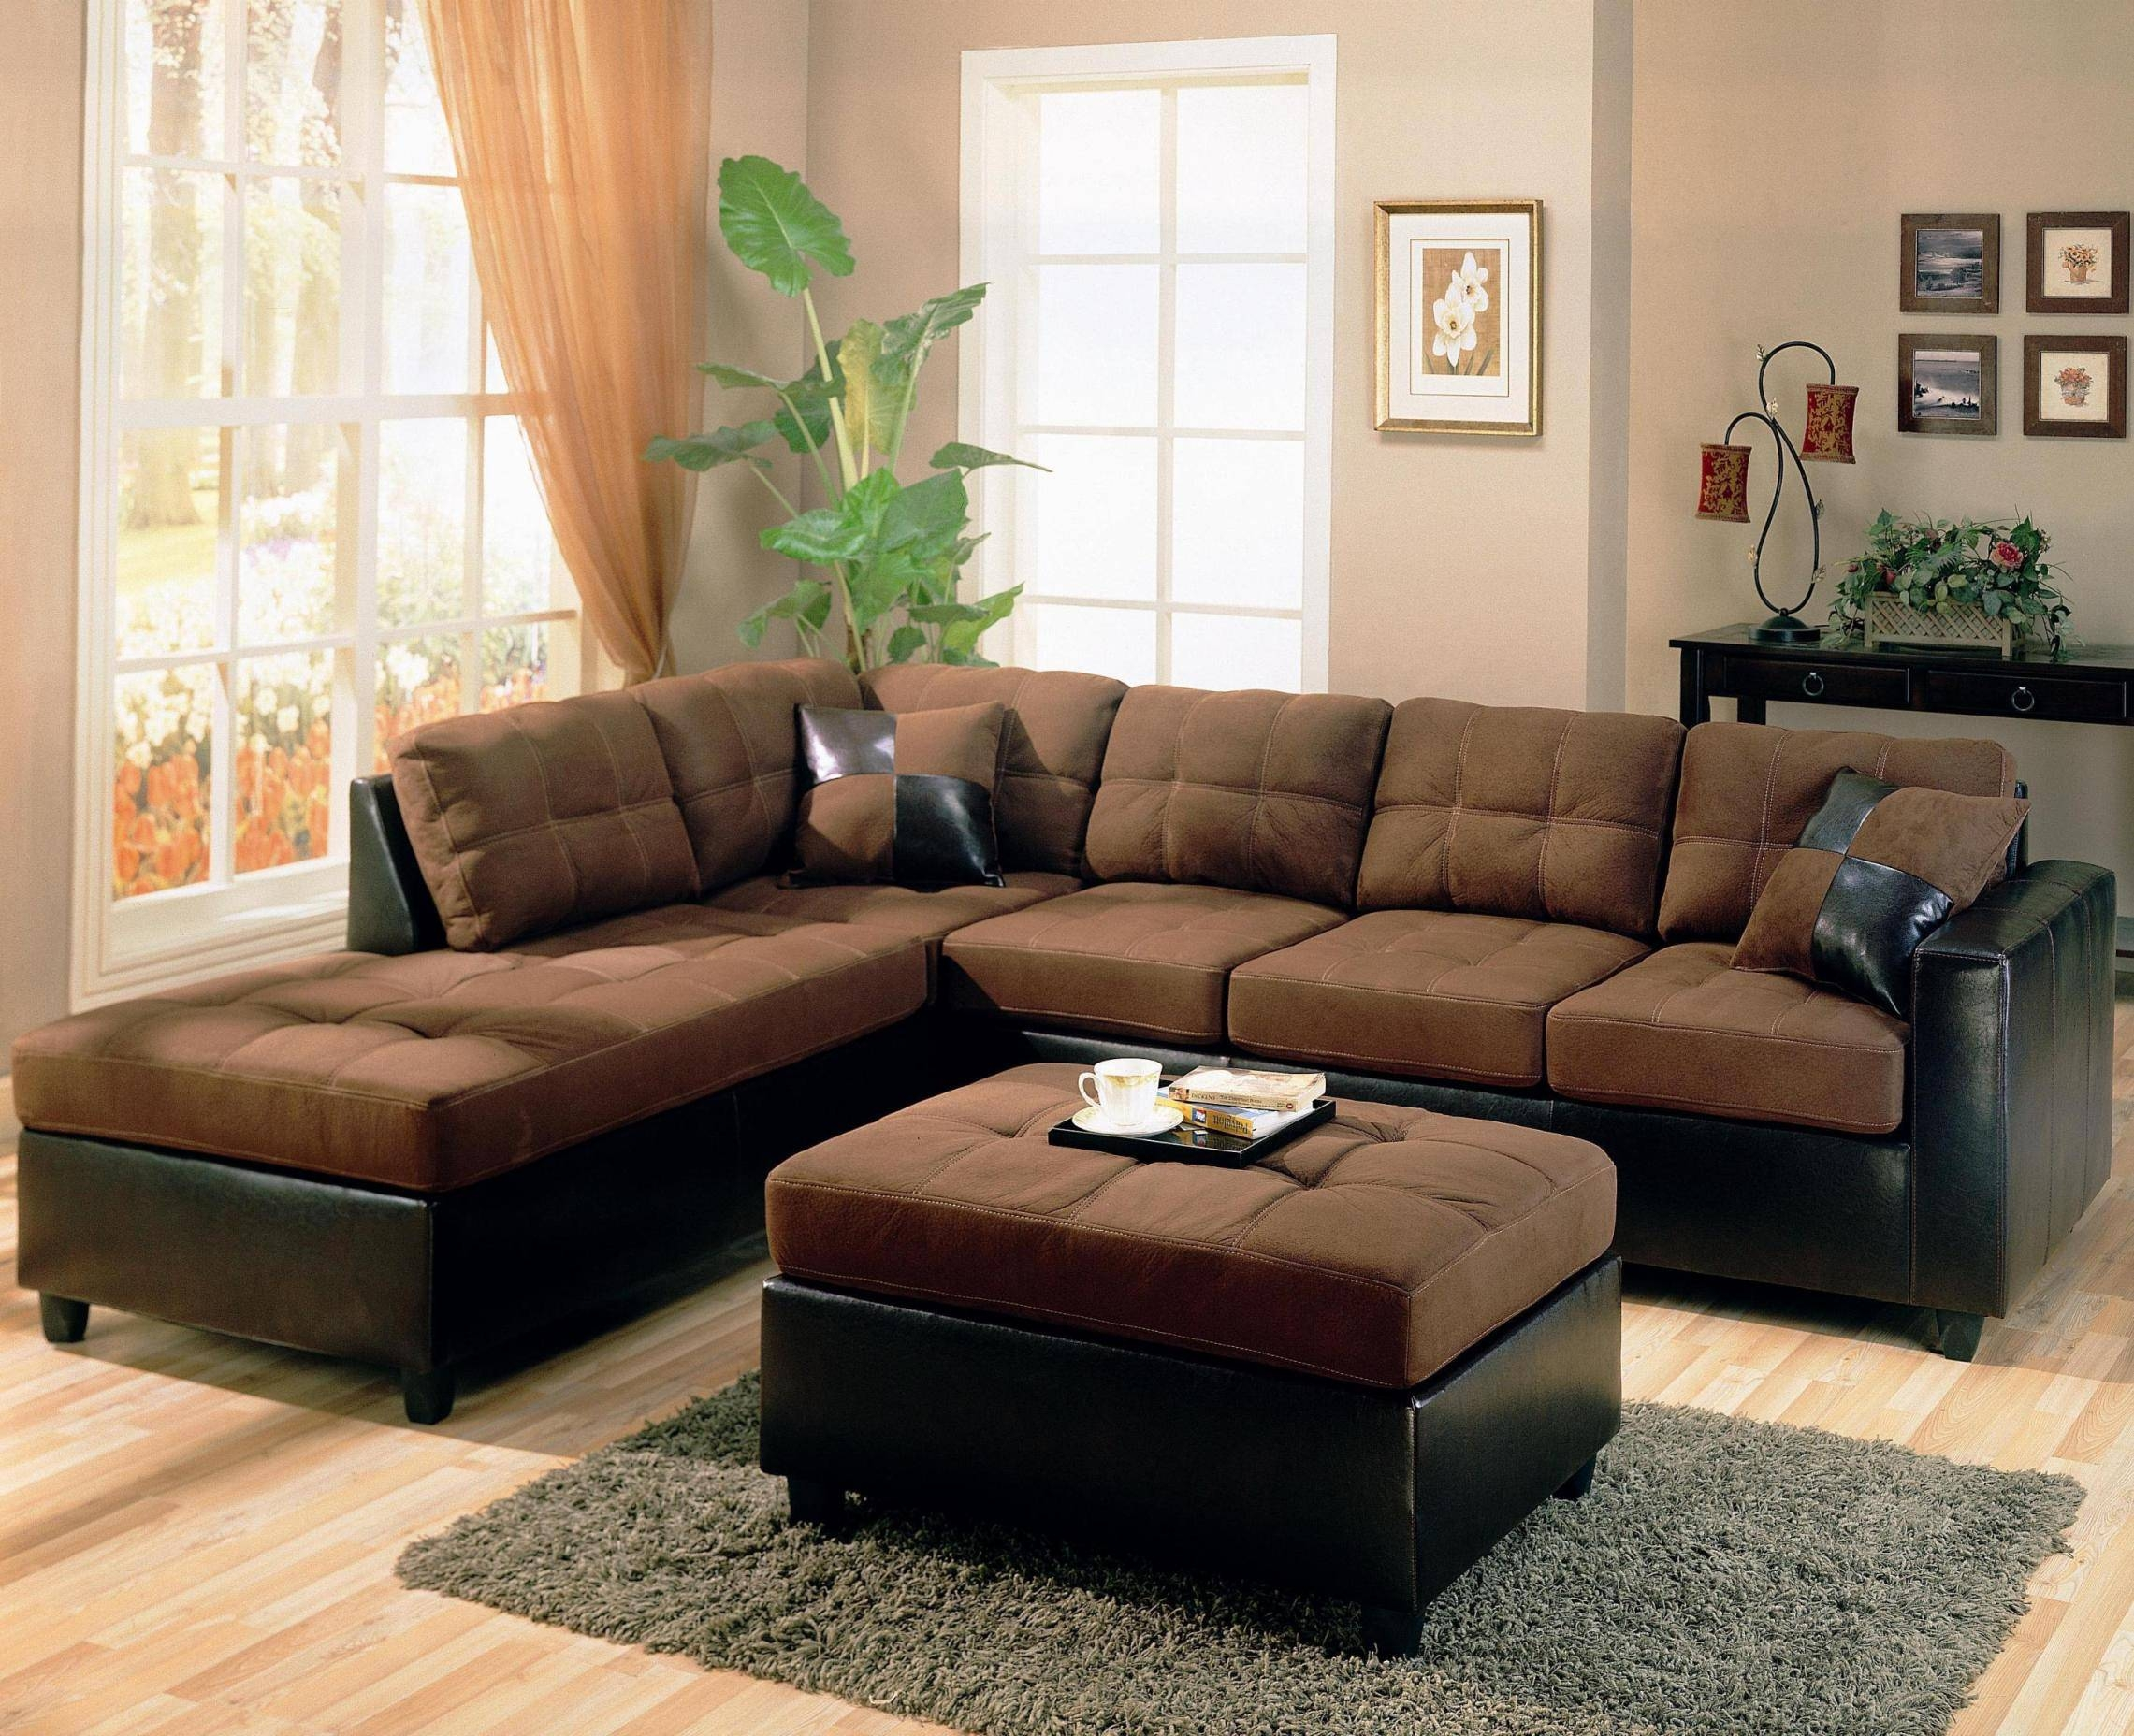 Sofa Trend 61 With Sofa Trend | Jinanhongyu within Sofa Trend (Image 15 of 25)